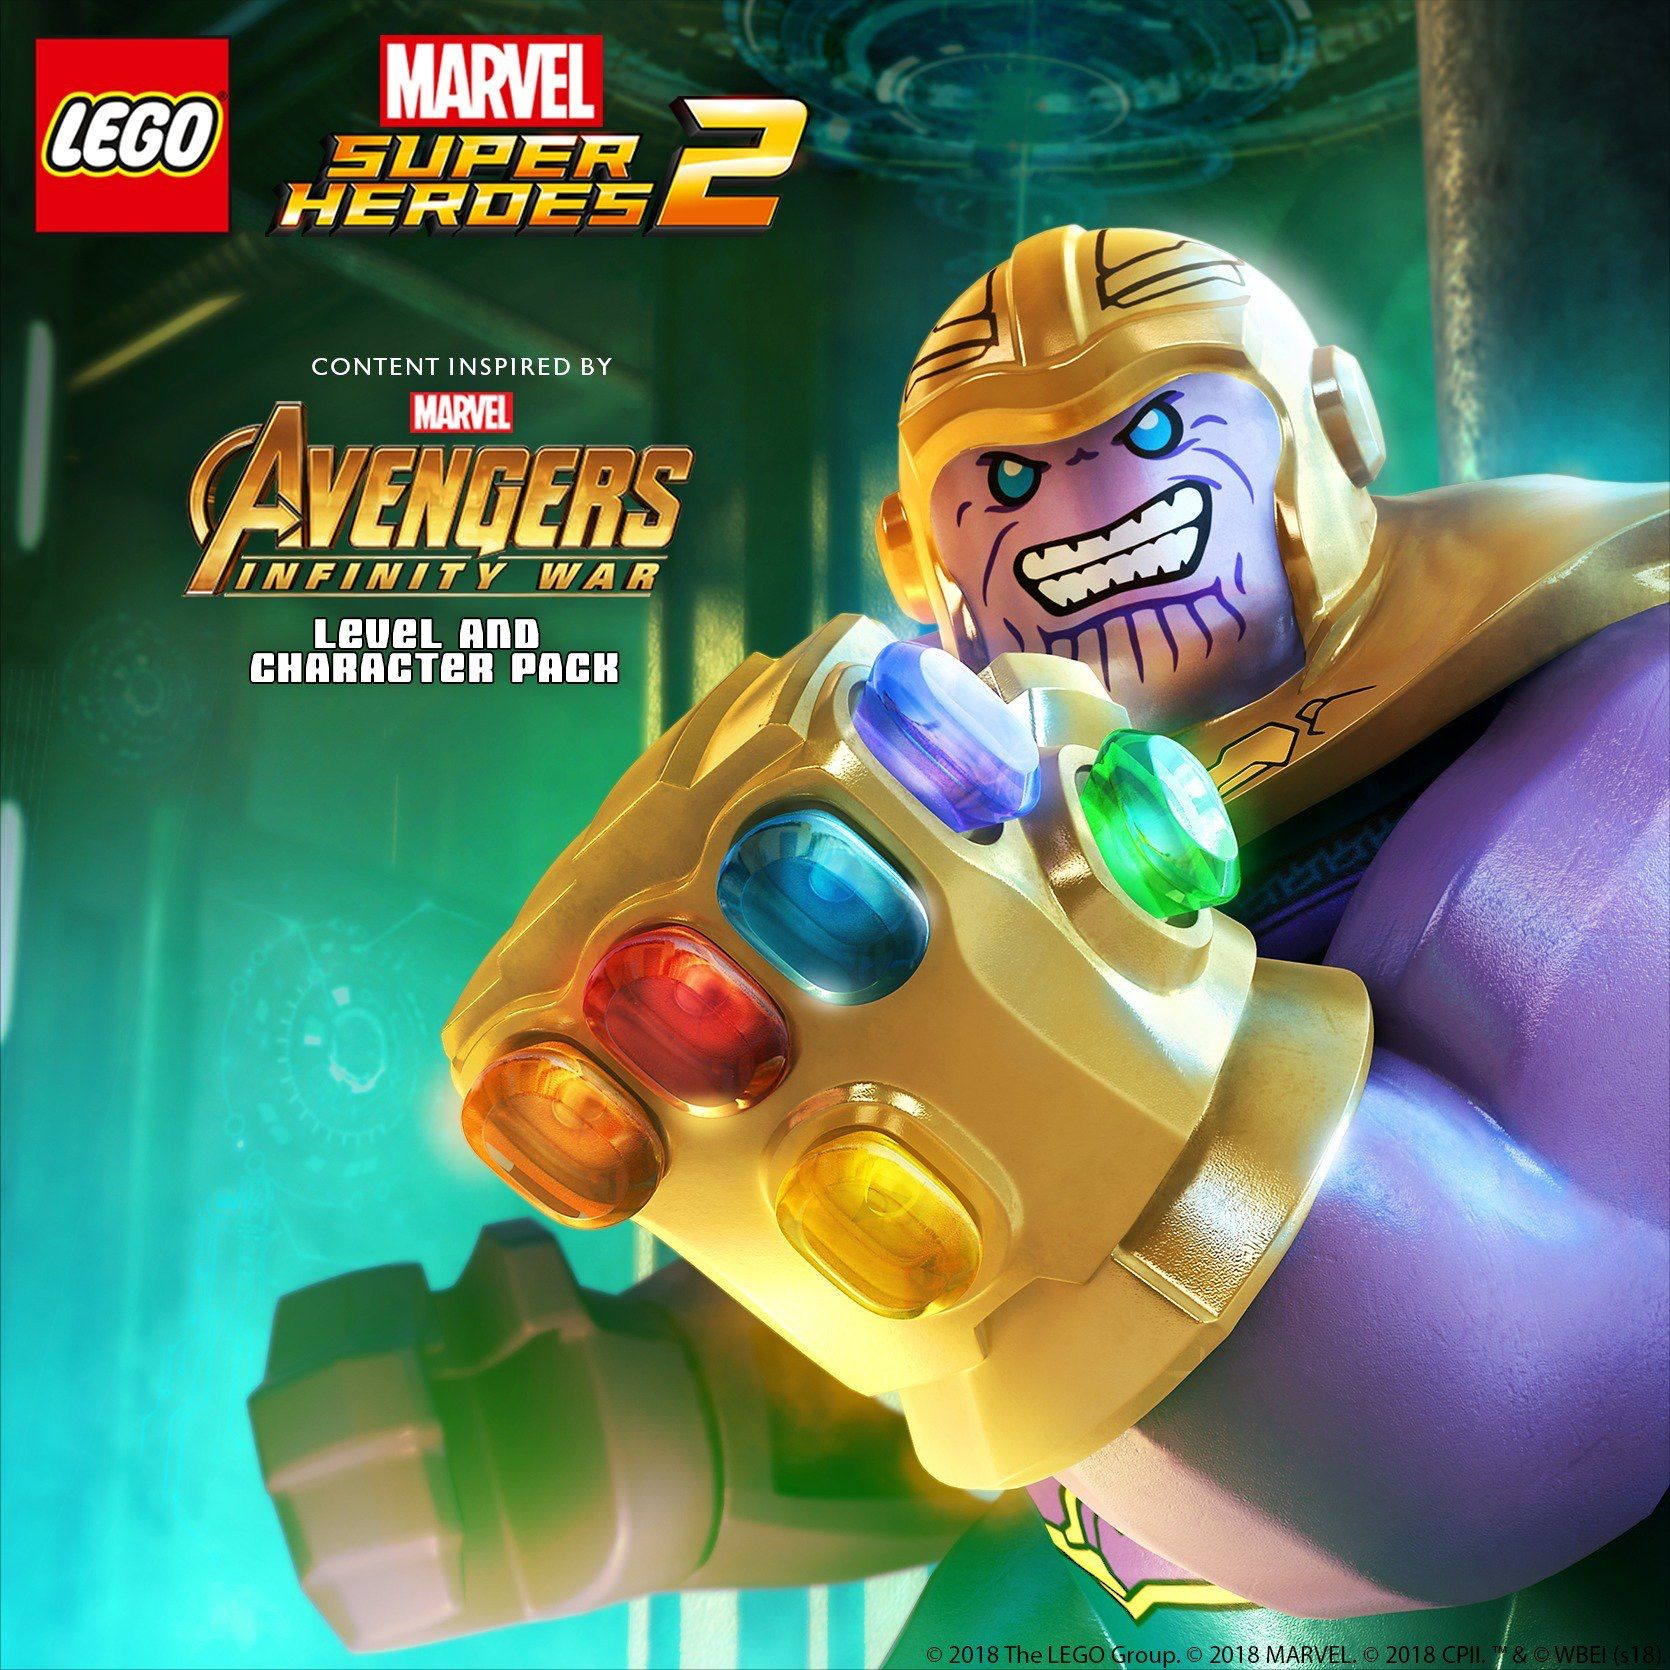 Lego marvel super heroes 2 marvels avengers infinity war dlc pack revealed lego marvel super